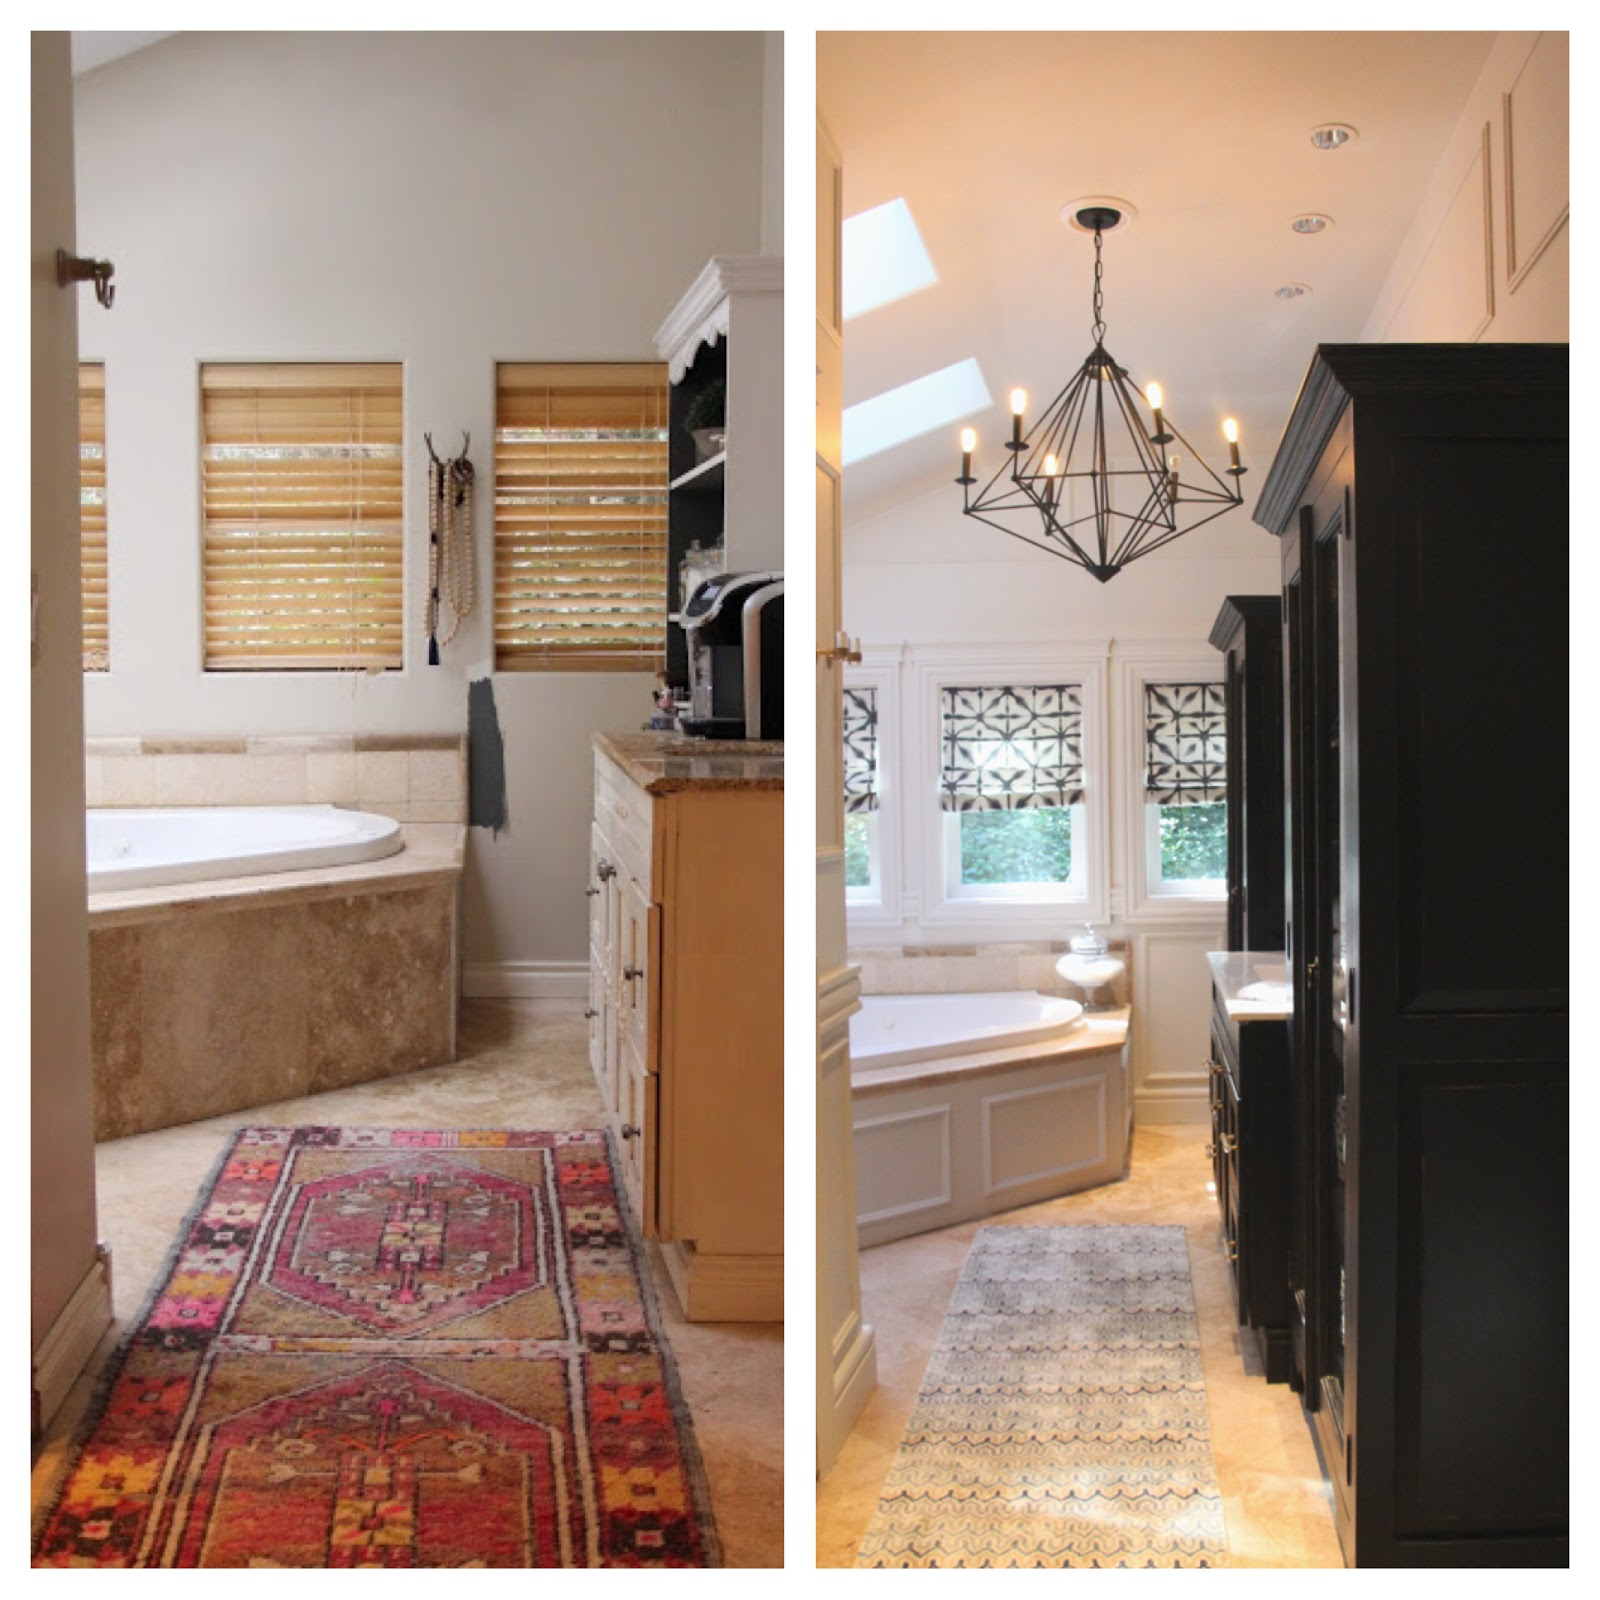 My sweet savannah painting interior doors black - One Of The Biggest Changes Was Taking Our Cottagey Vanity And Giving It A Modern Twist With Black Paint And New Hardware From Luxholdups